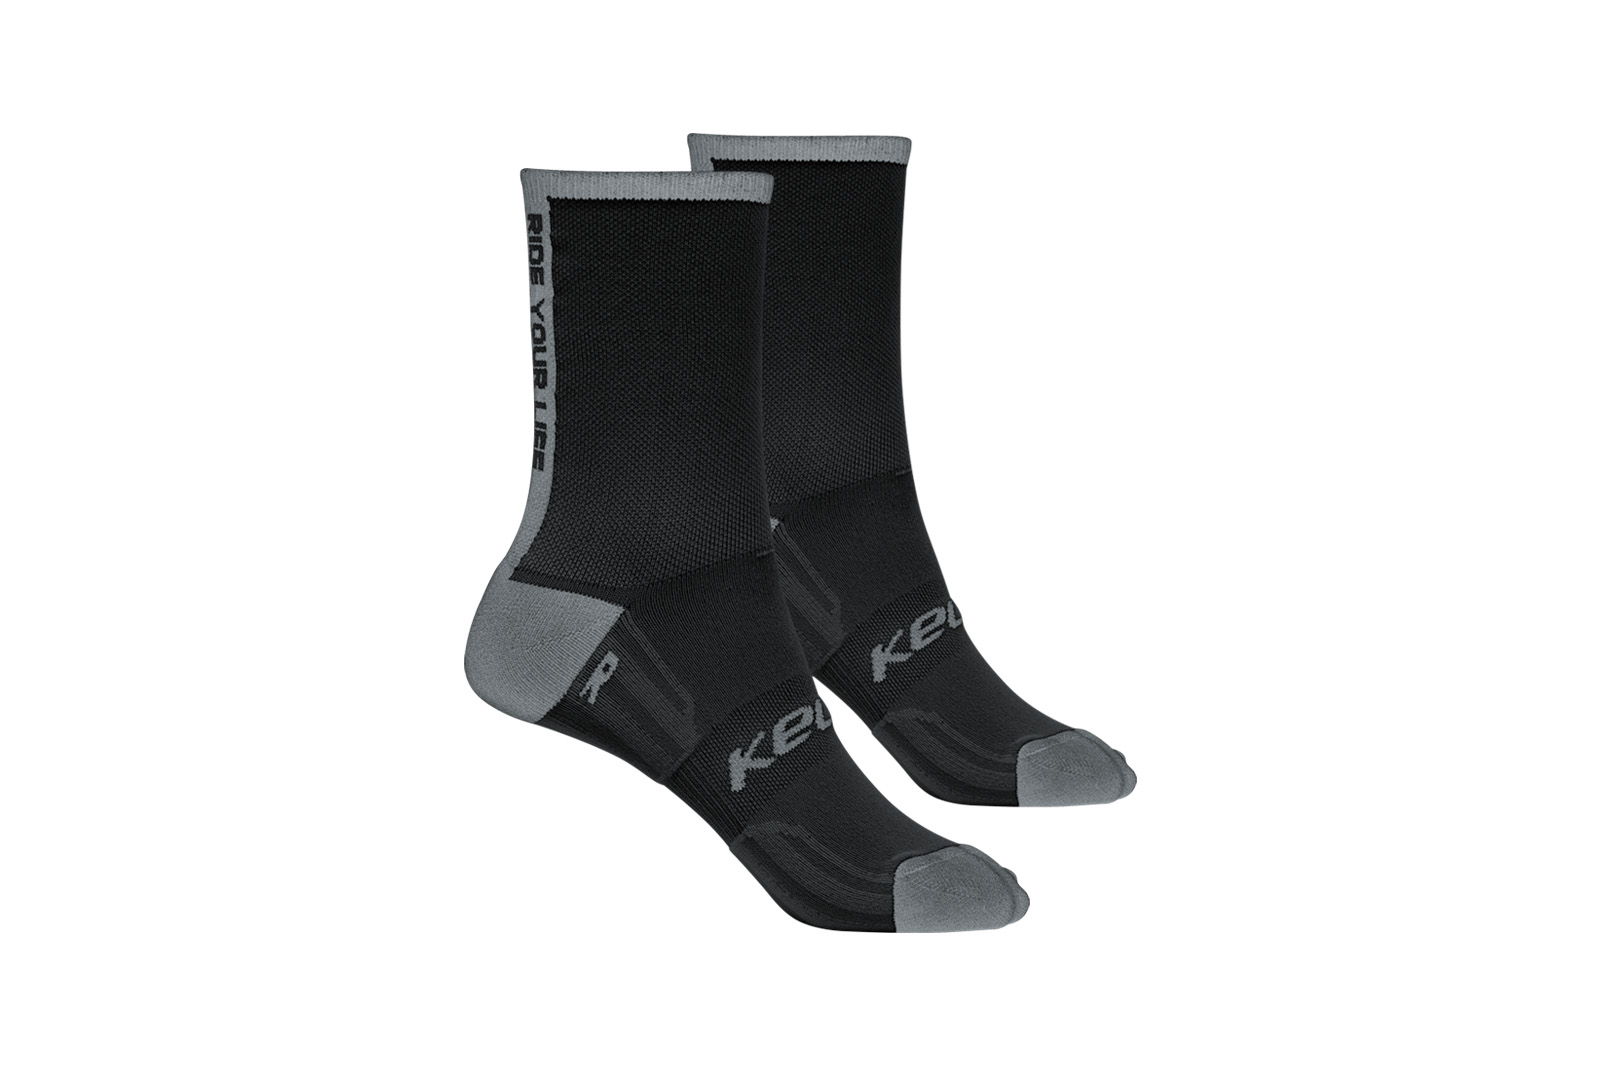 Socken KELLYS PRO Race black 38-42 (016) - bagier Sports GmbH